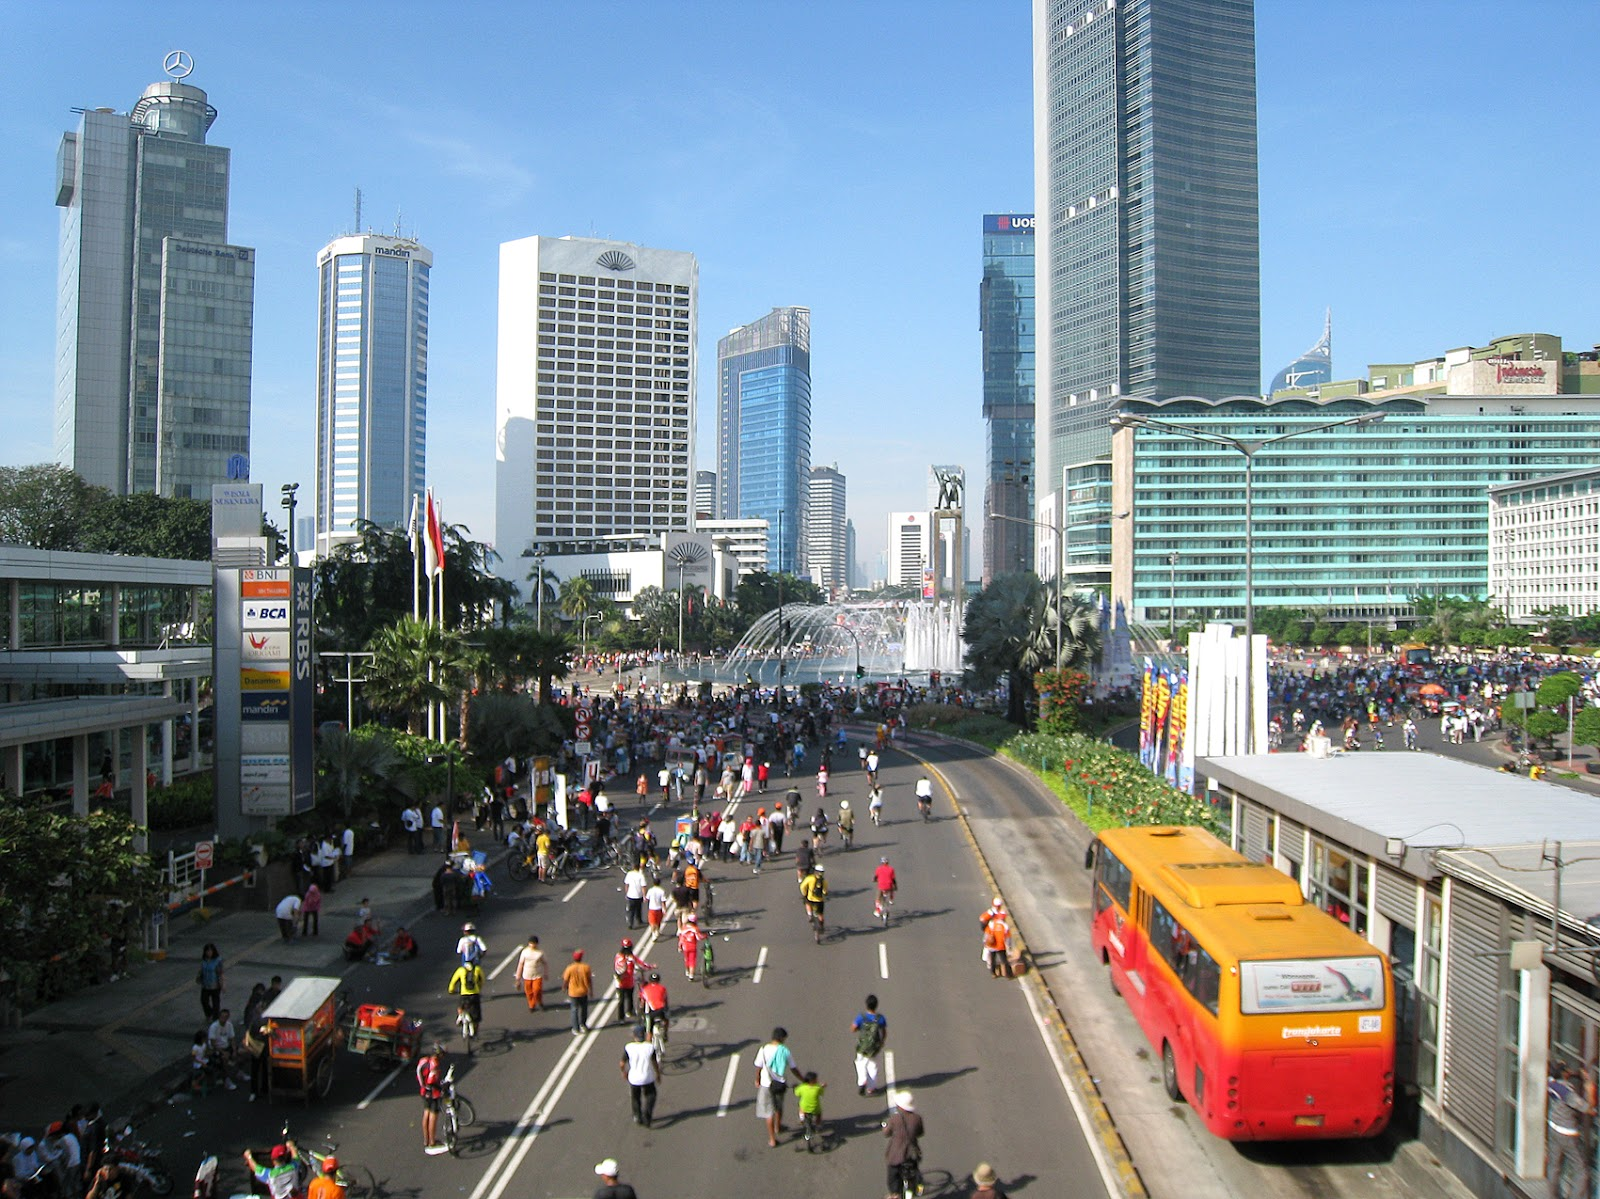 https://upload.wikimedia.org/wikipedia/commons/0/06/Jakarta_Car_Free_Day.jpg